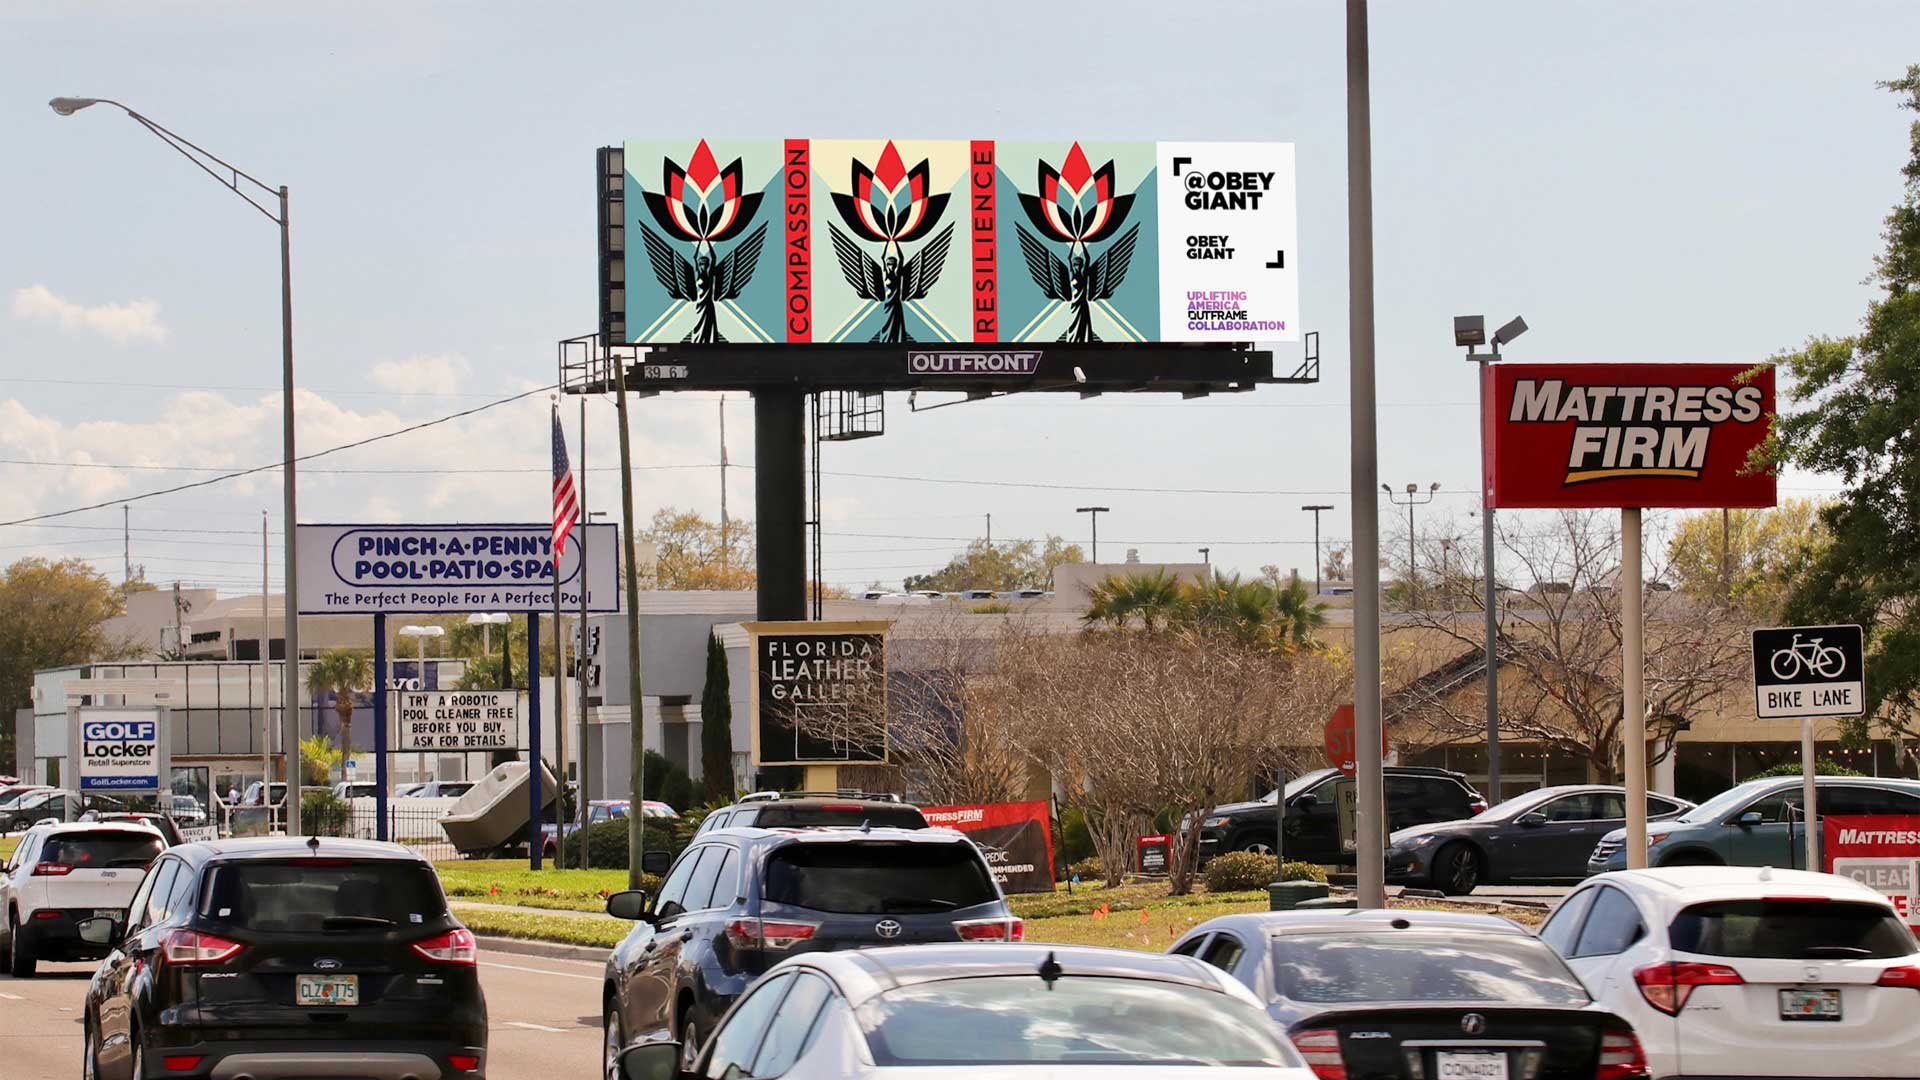 obey giant highway billboard out of home advertising in florida